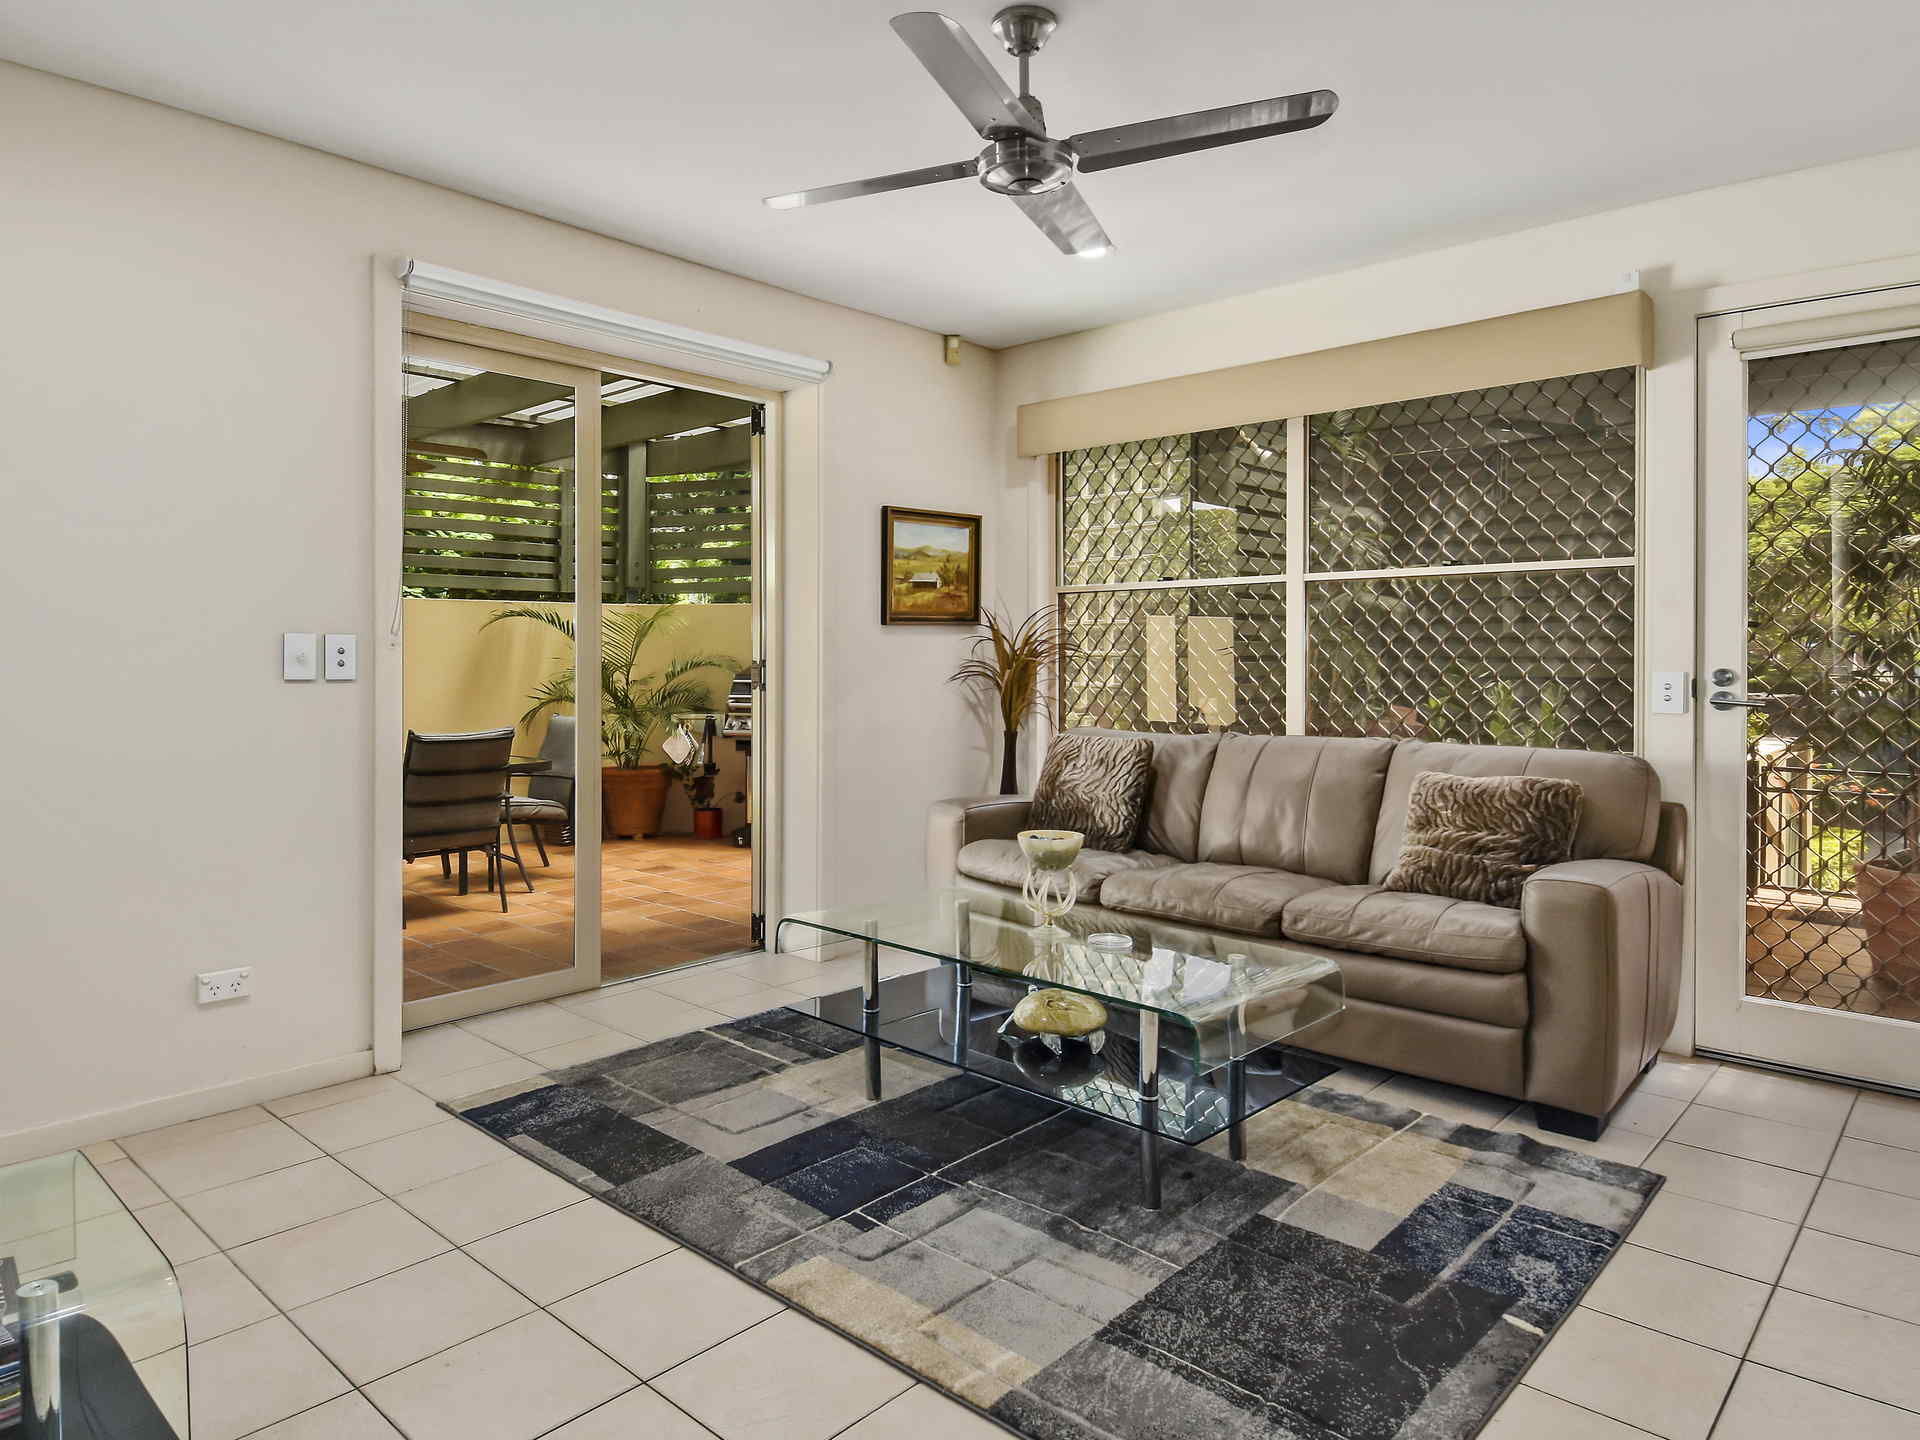 Real Estate   Gold Coast   Chevron Realty   014 Open2view Id494894 2120 Ross Street Royal Pines Benowa